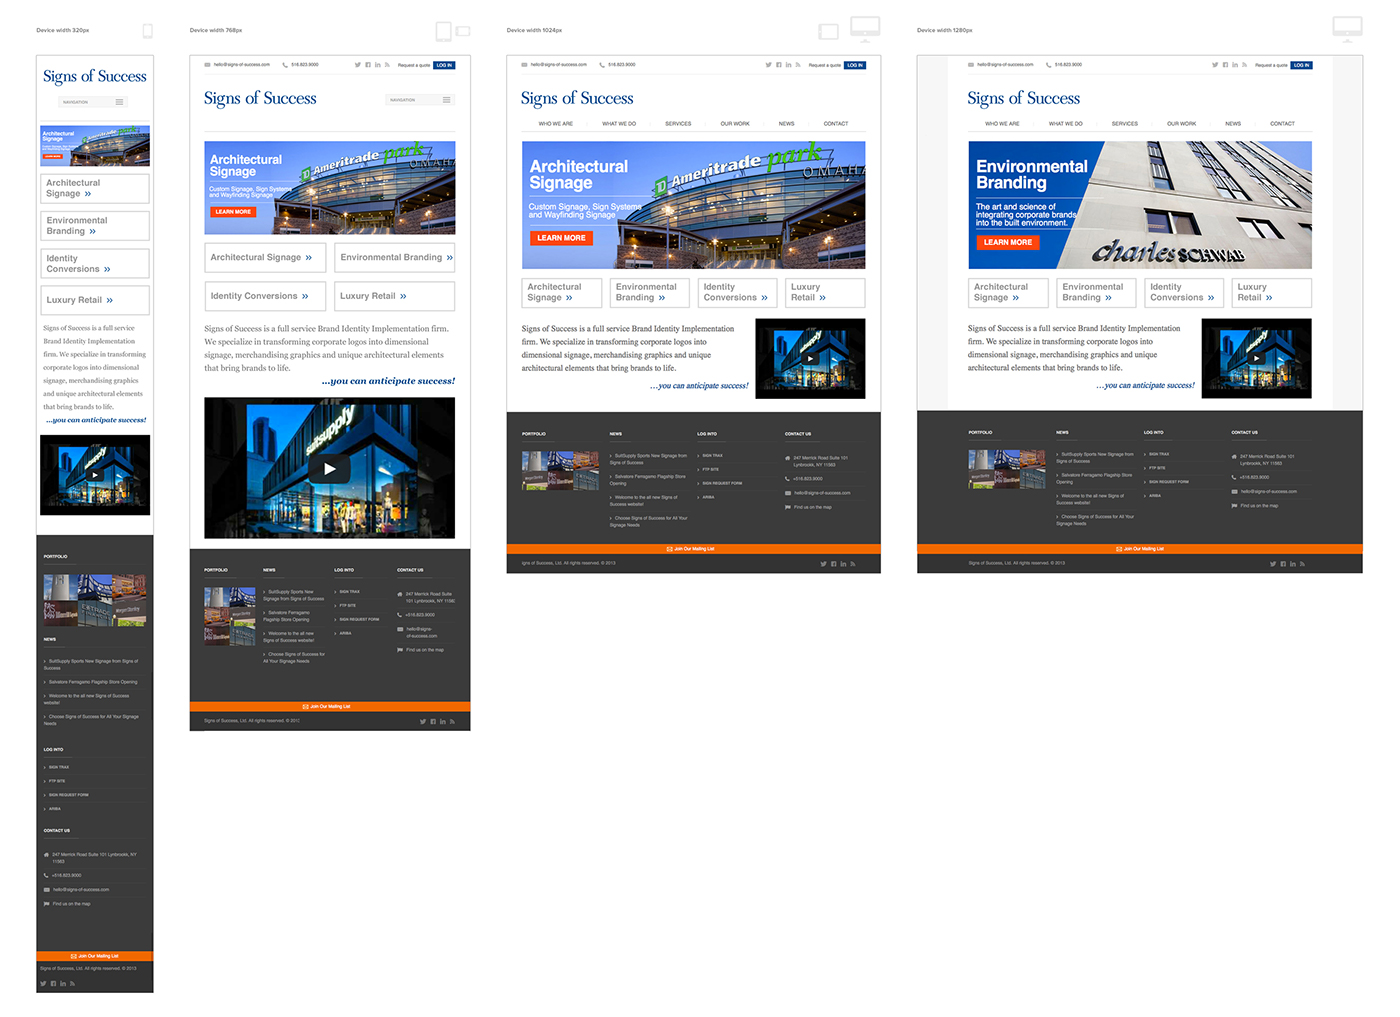 Responsive website design concepts for Signs of Success